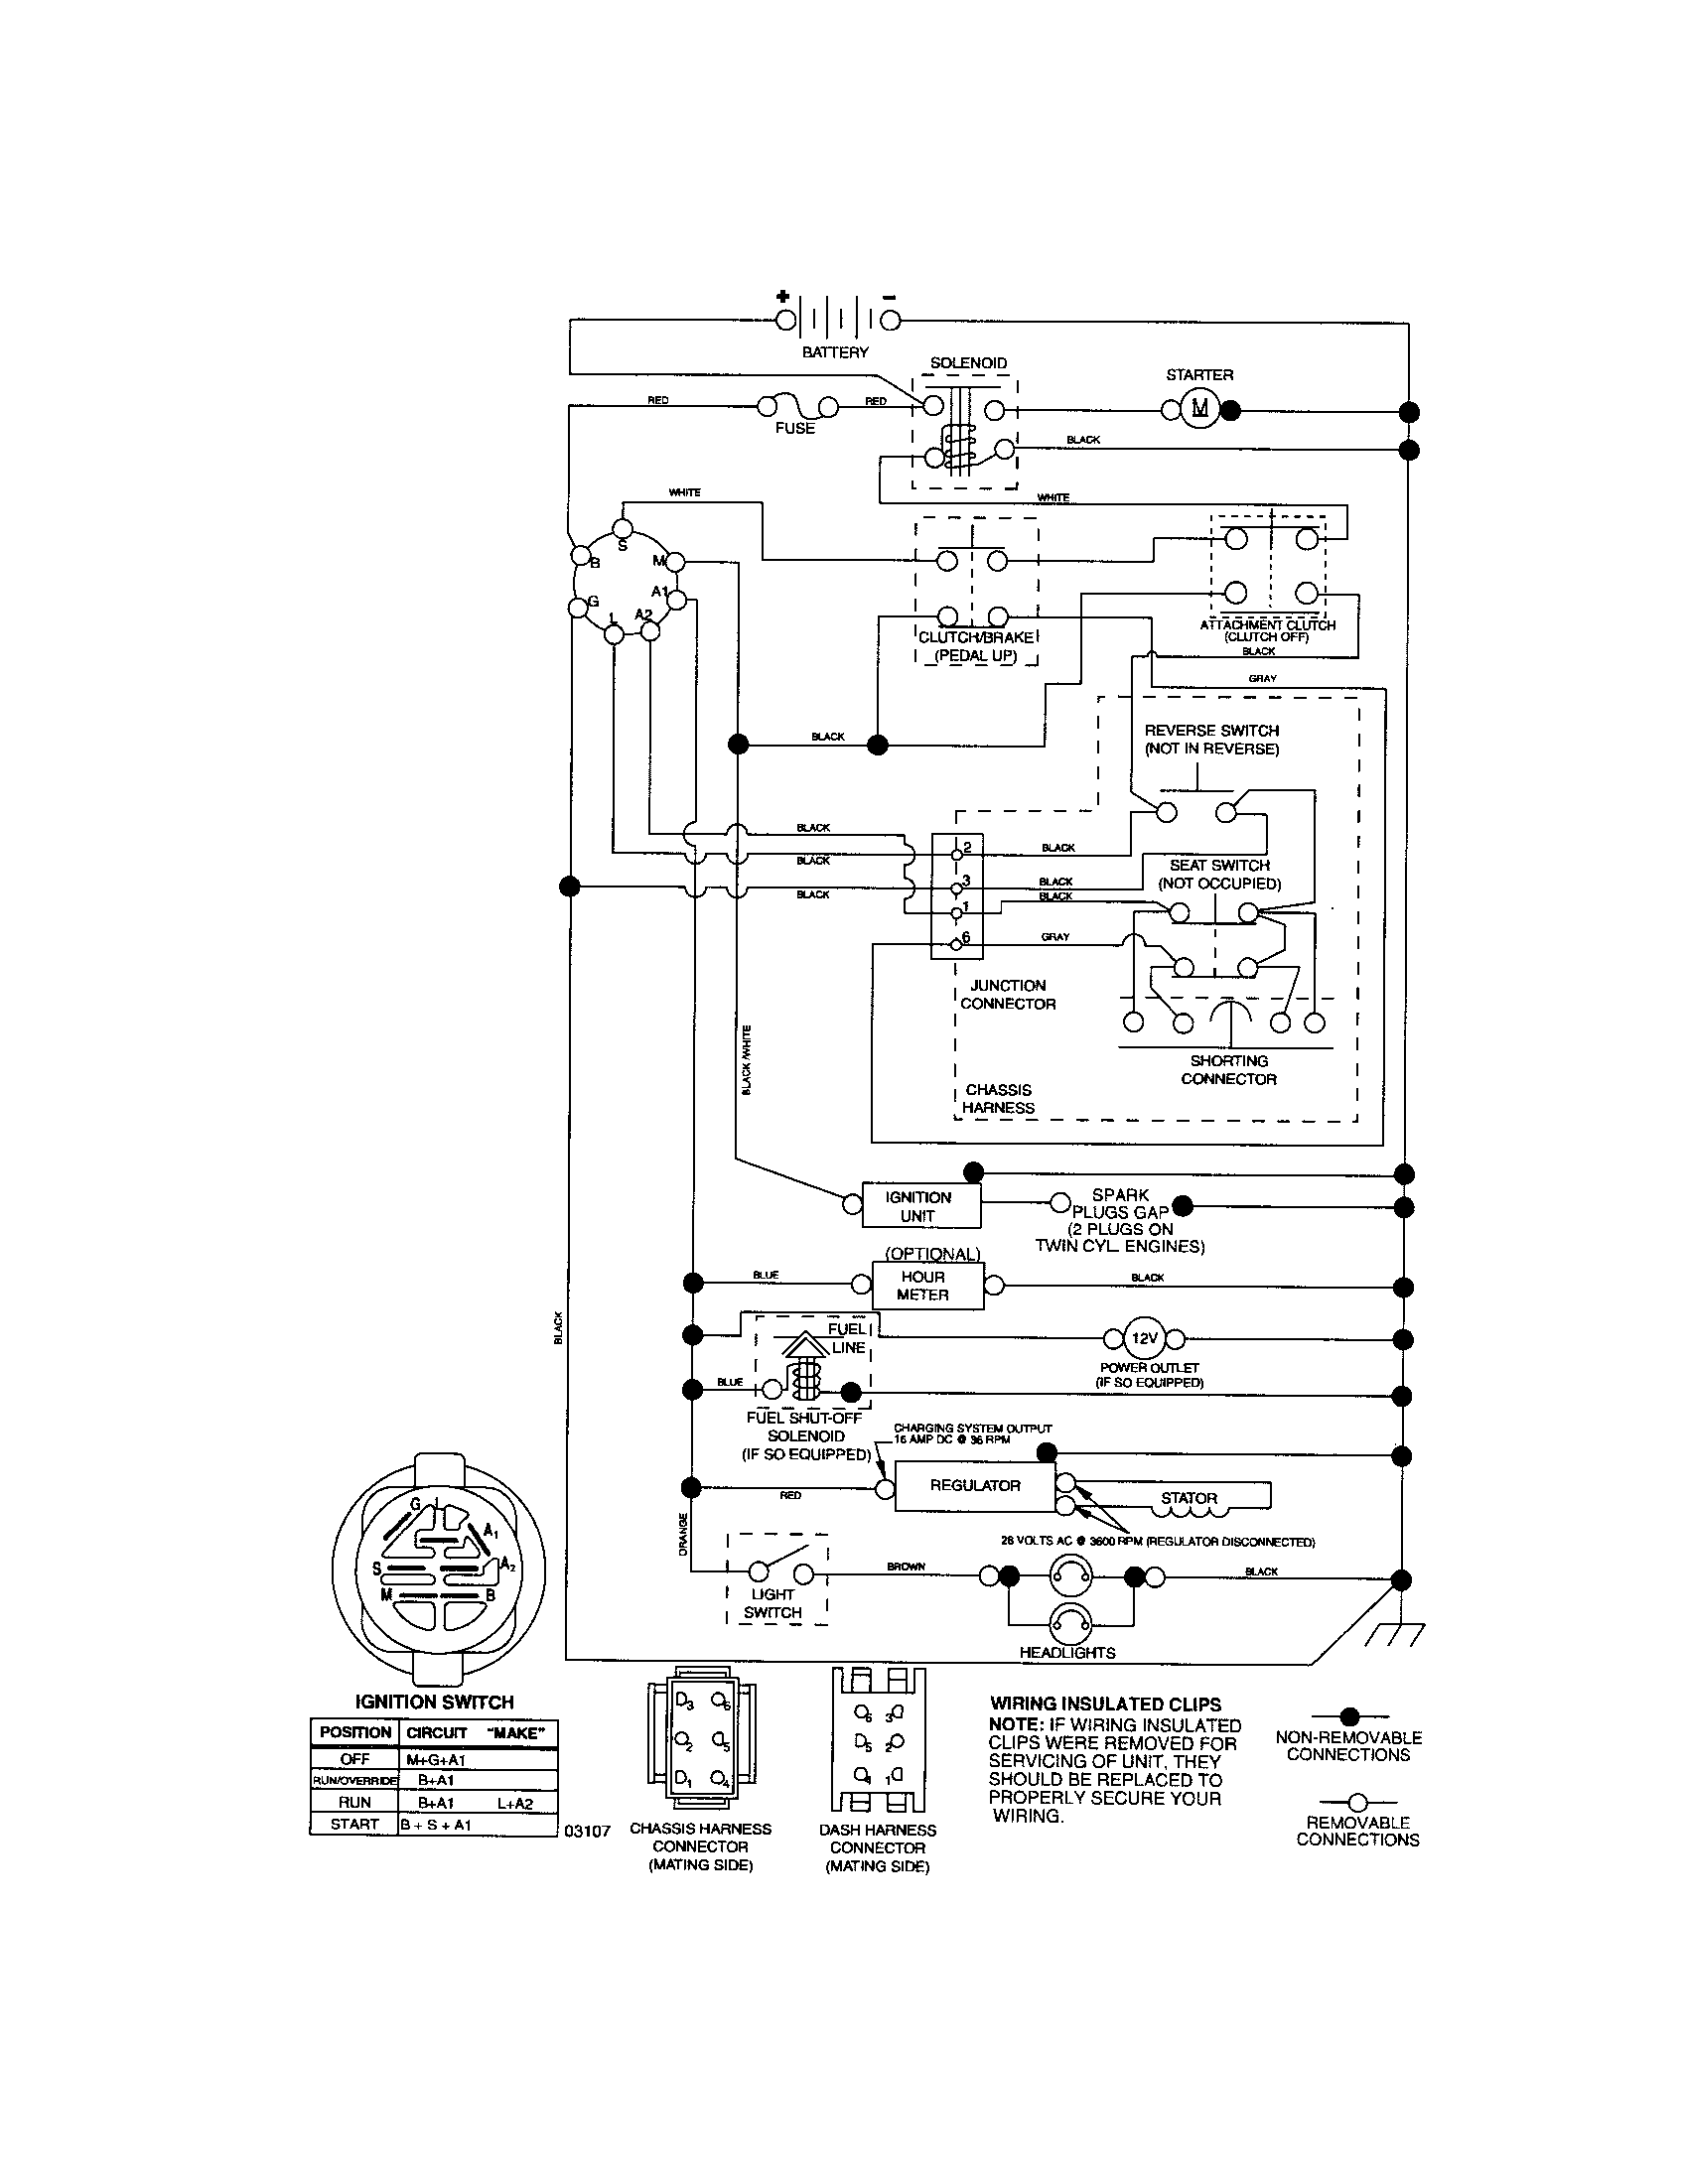 craftsman riding mower electrical diagram wiring diagram craftsman rh pinterest com murray mower wiring diagram grasshopper mower wiring diagram